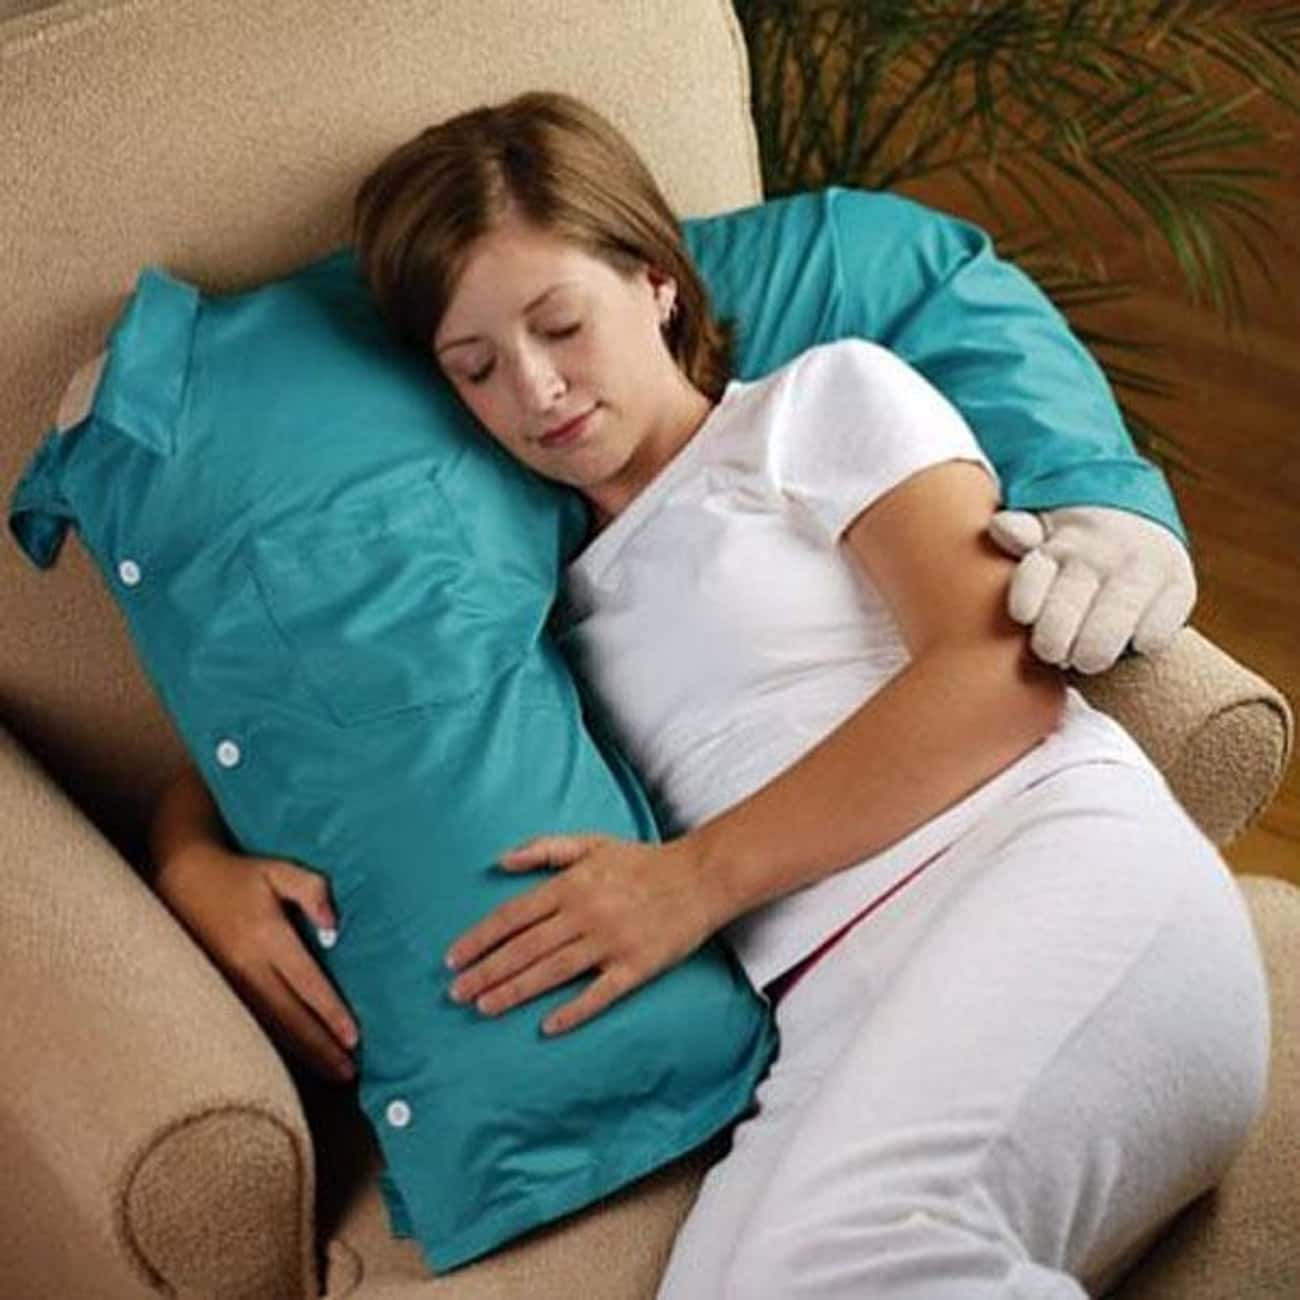 Forever Alone Arm Pillow is listed (or ranked) 3 on the list 10Japanese Inventions And Gadgets That Might Be Causing More Problems Than They're Solving